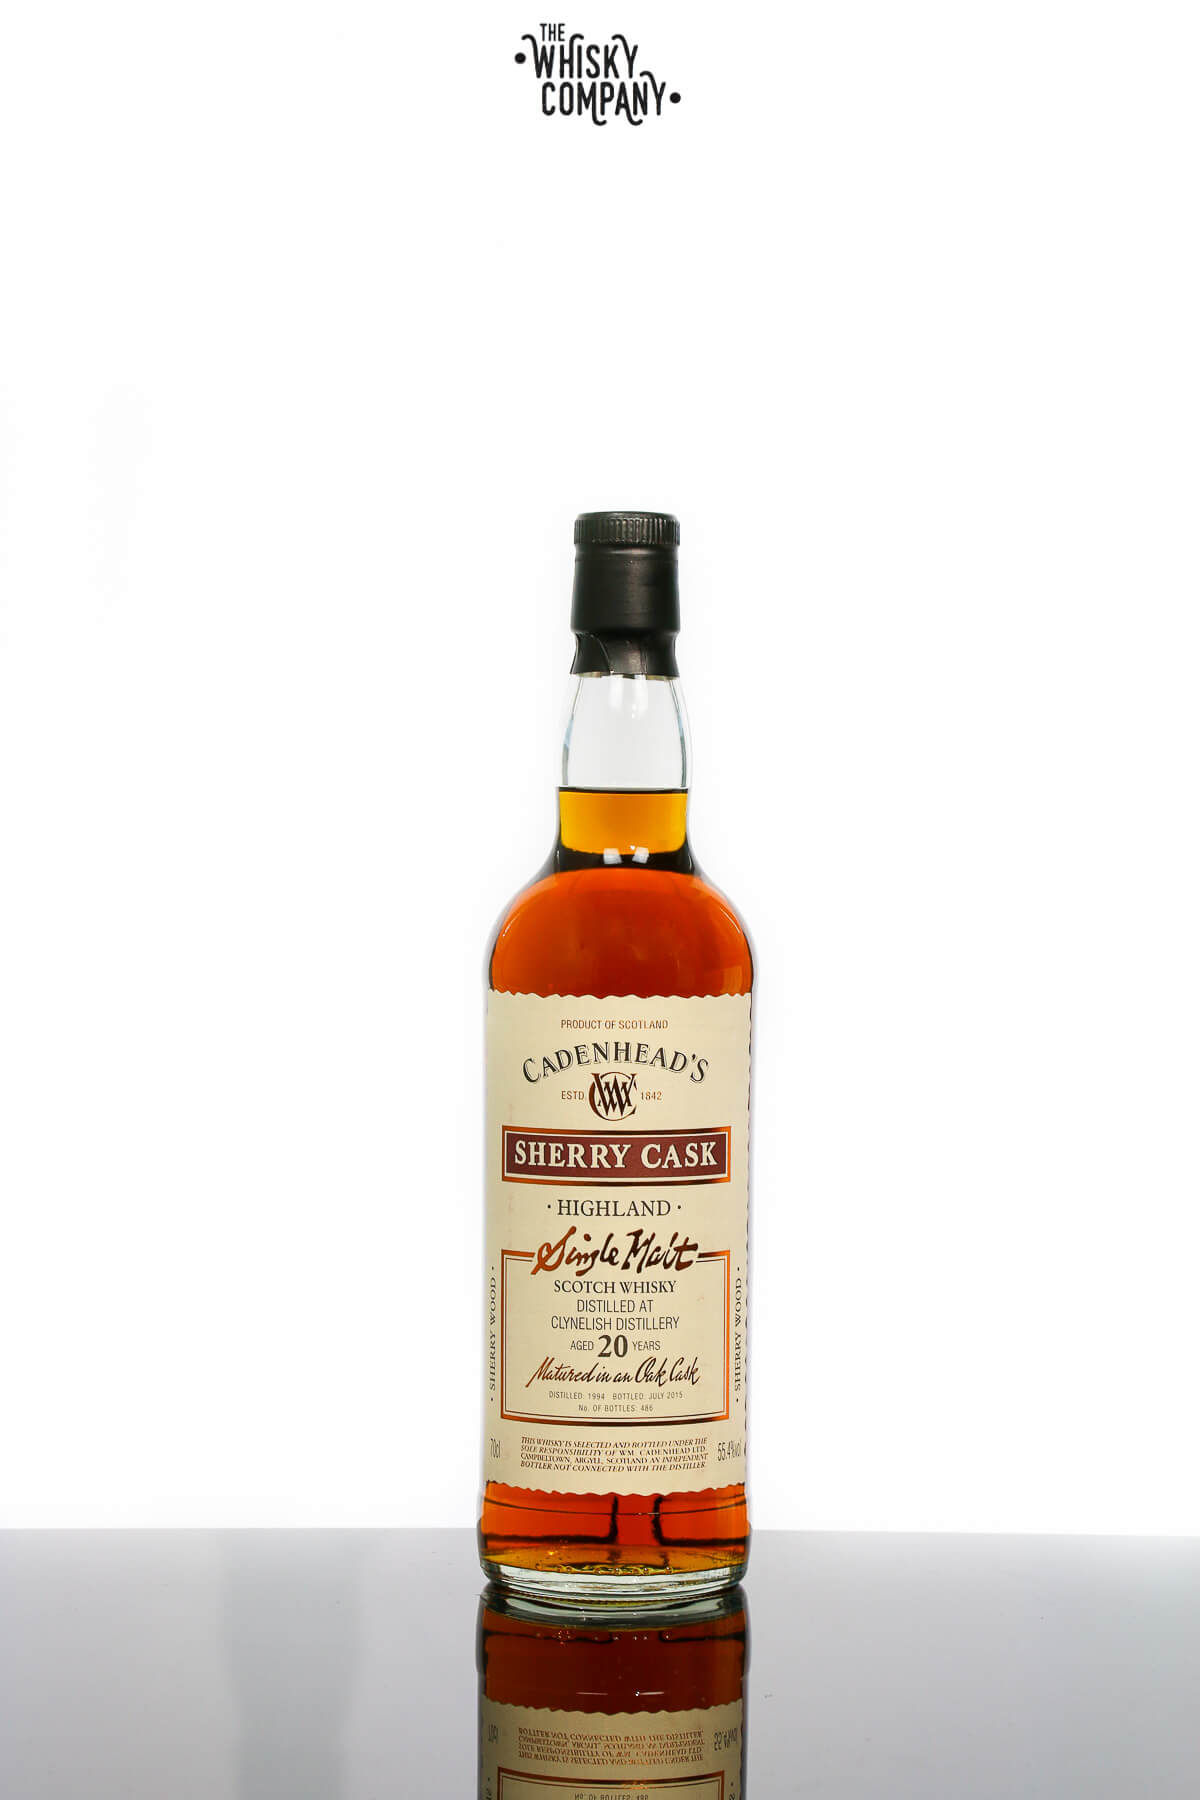 Clynelish 1994 Aged 20 Years Old Single Malt Scotch Whisky - Cadenhead's (700ml)